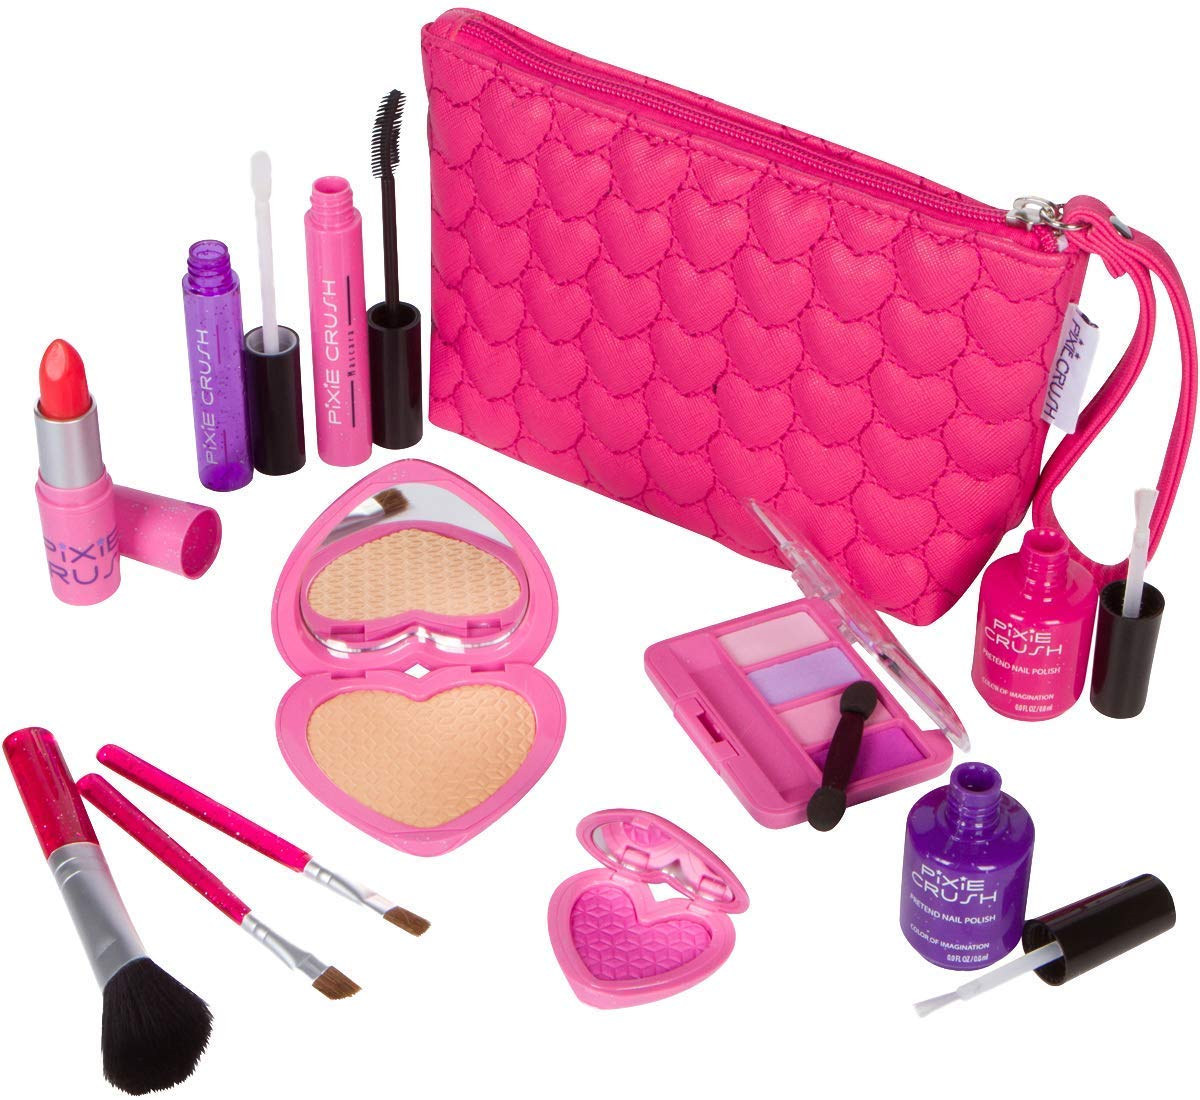 Love Series Designer Girls Pretend Play Makeup Kit with Pink Heart Bag